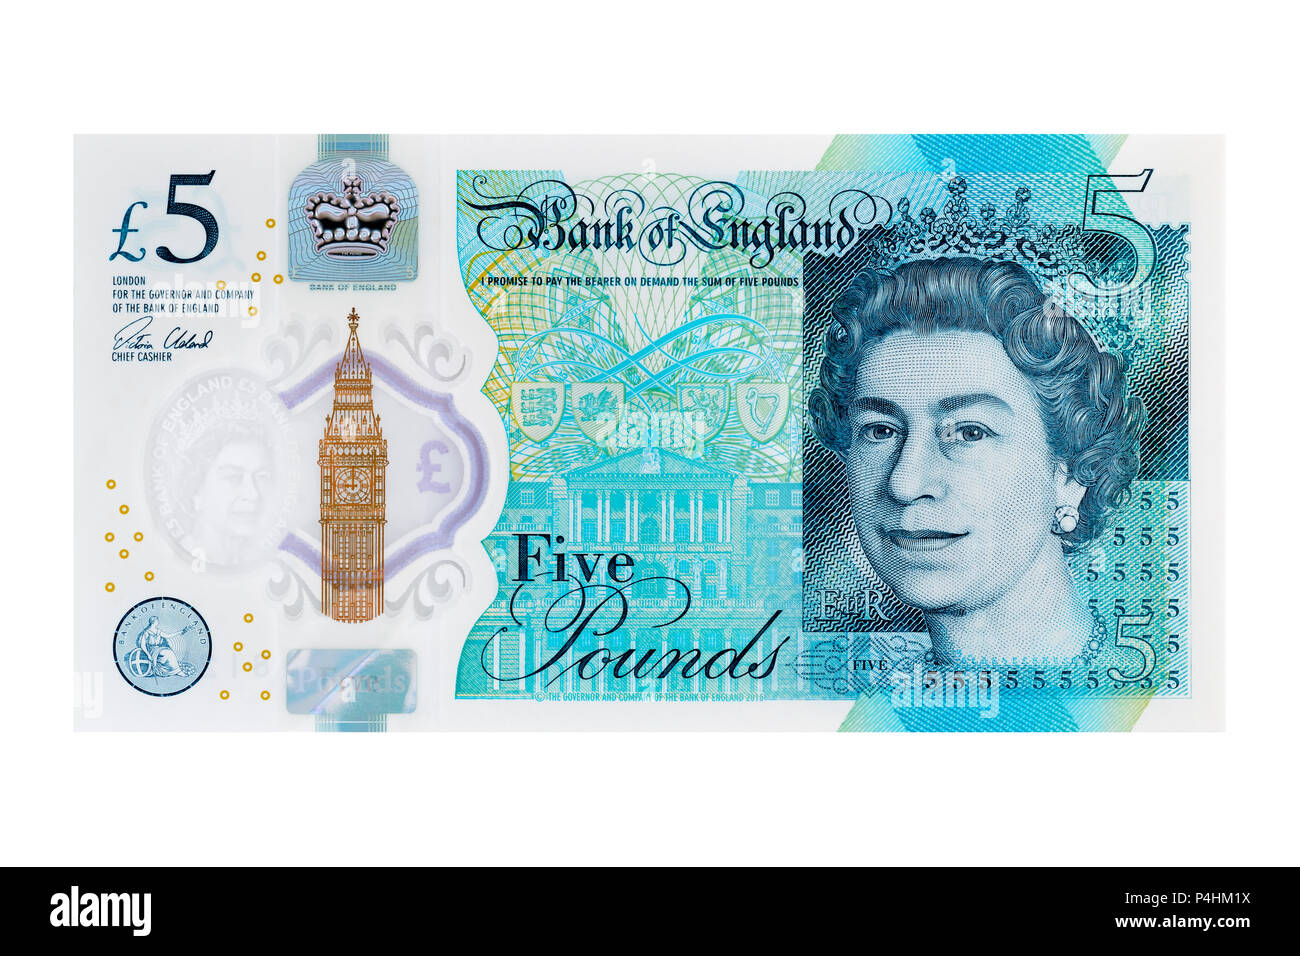 New Five Pound Note, UK, Cut Out - Stock Image